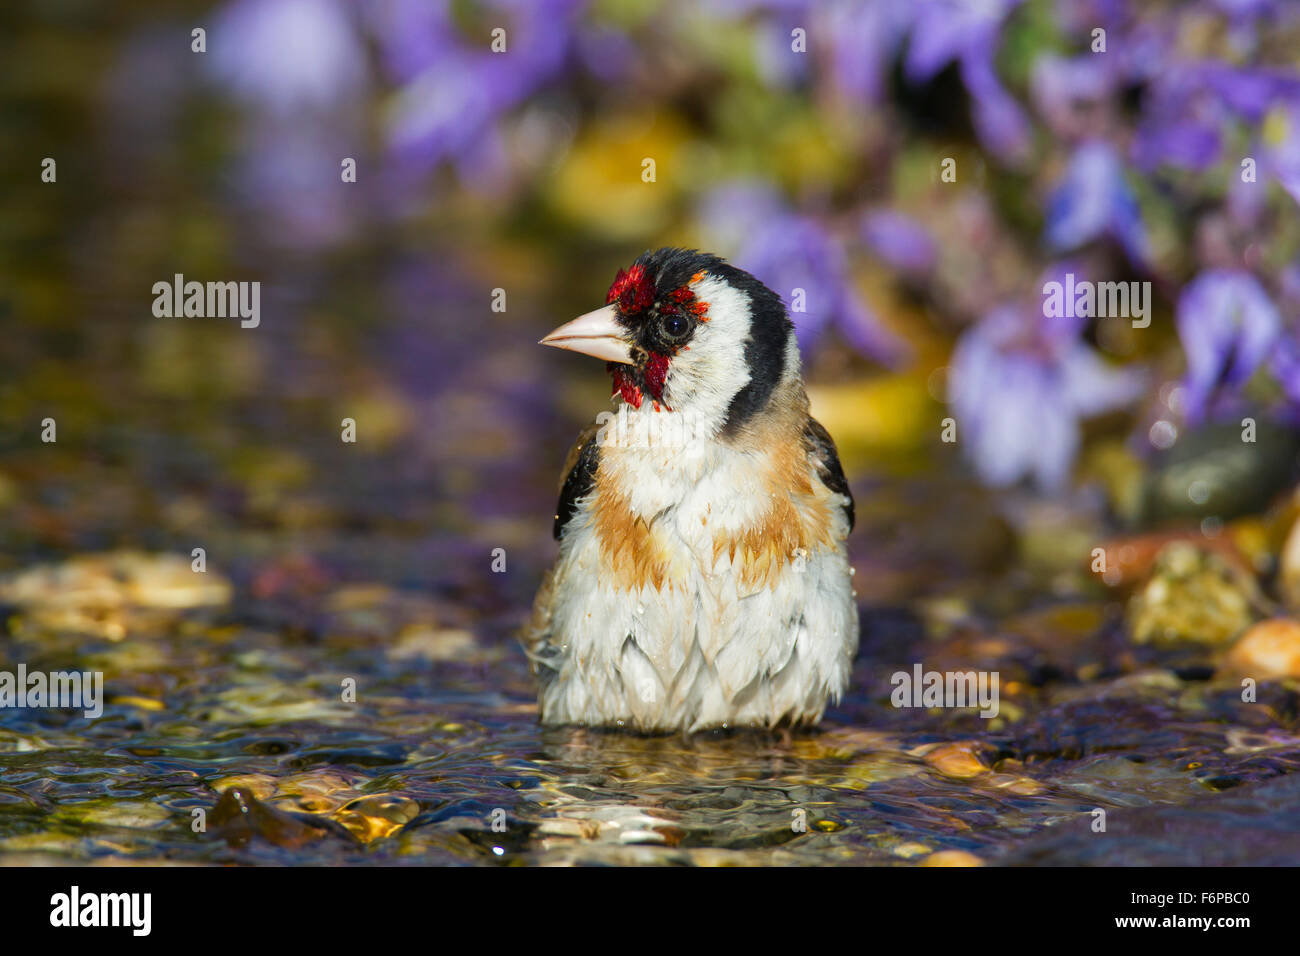 European goldfinch (Carduelis carduelis) cleaning feathers by bathing in shallow water of brook Stock Photo